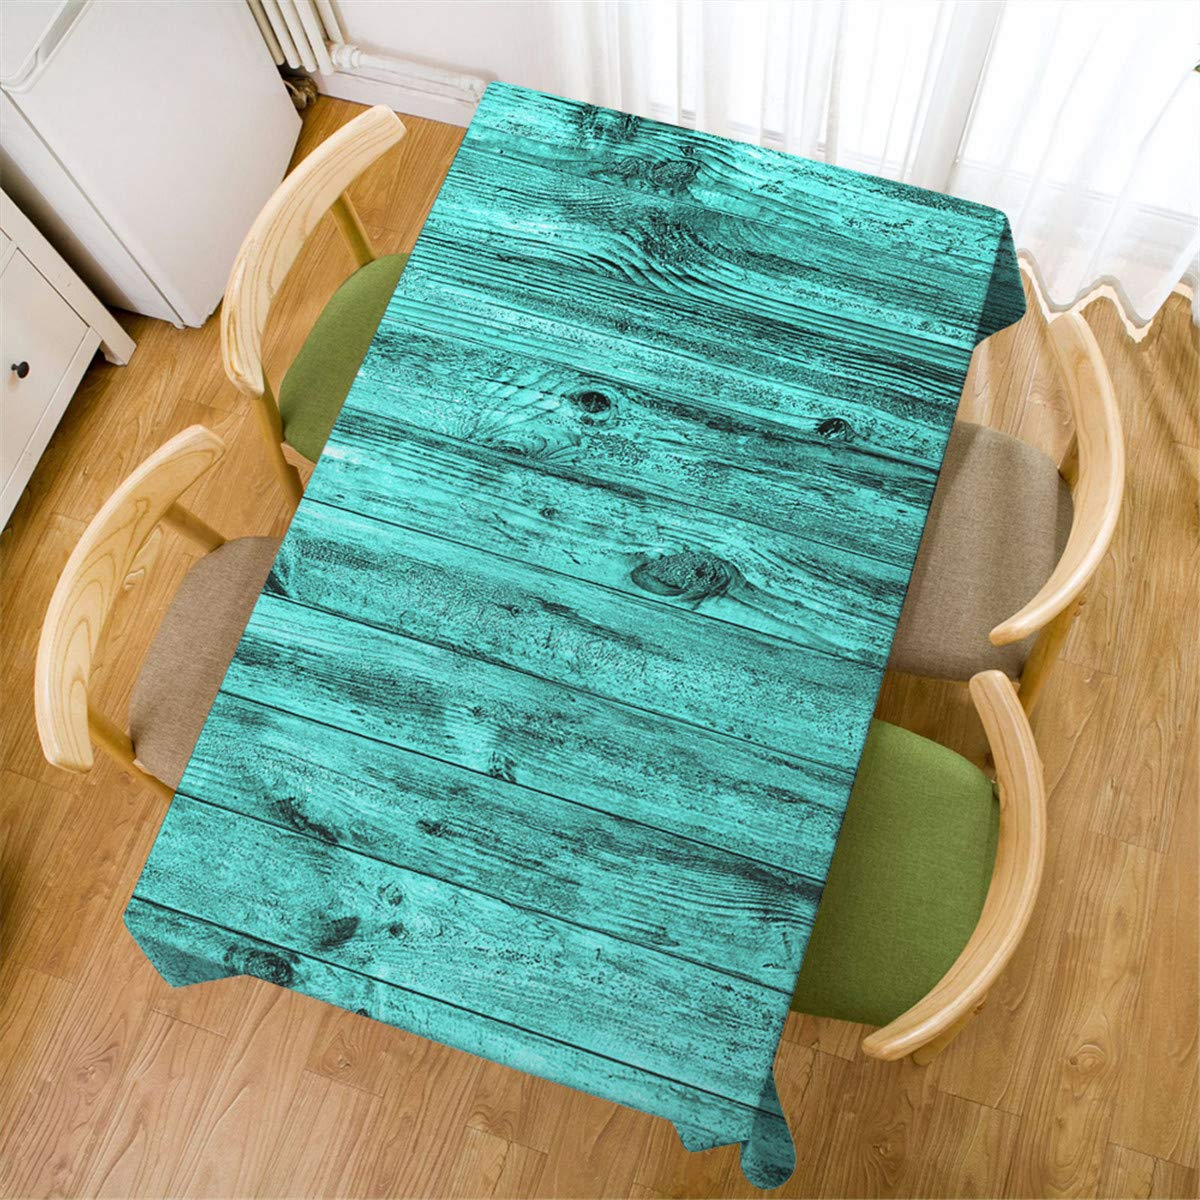 Mugod Turquoise Wood Wall Tablecloth Wall of Wood Texture Background Dining Room Kitchen Decoration Rectangular Table Cover 52 W X 70 L Inches